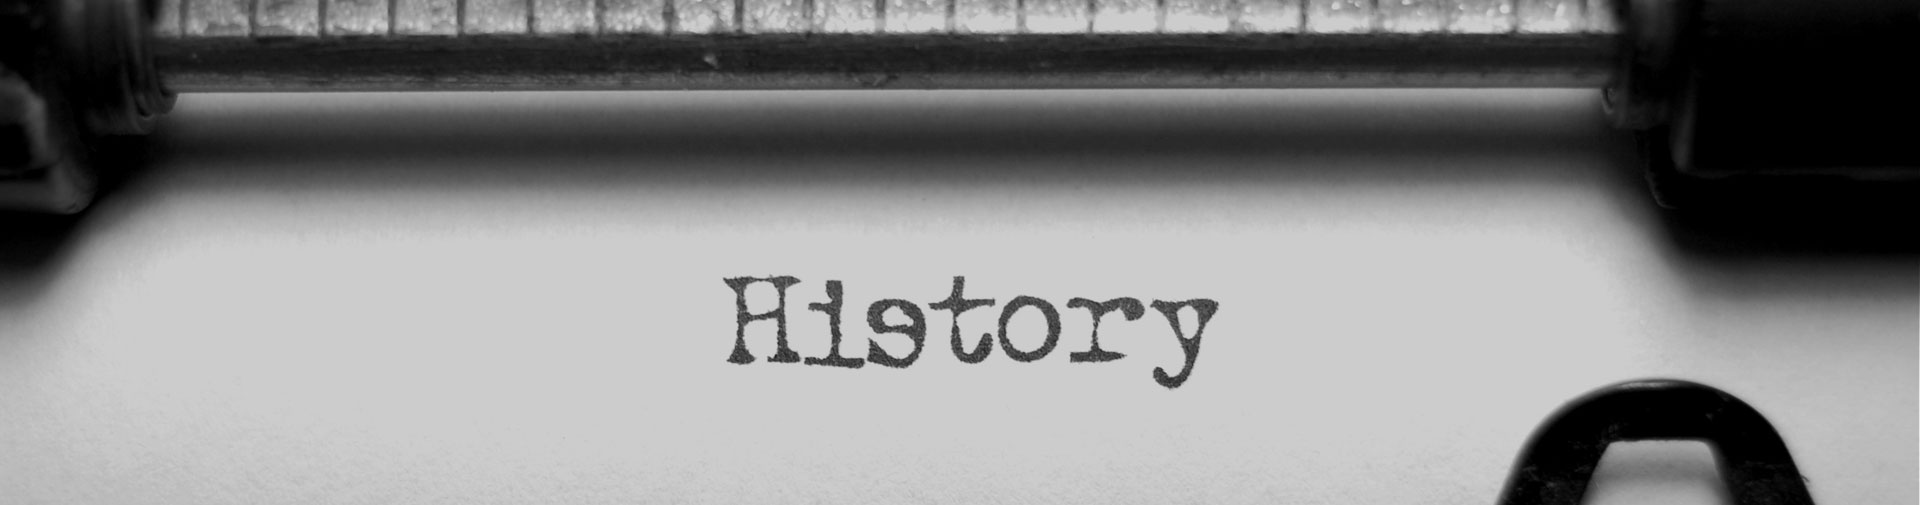 Learn about the history of kfcp, founded in 1976